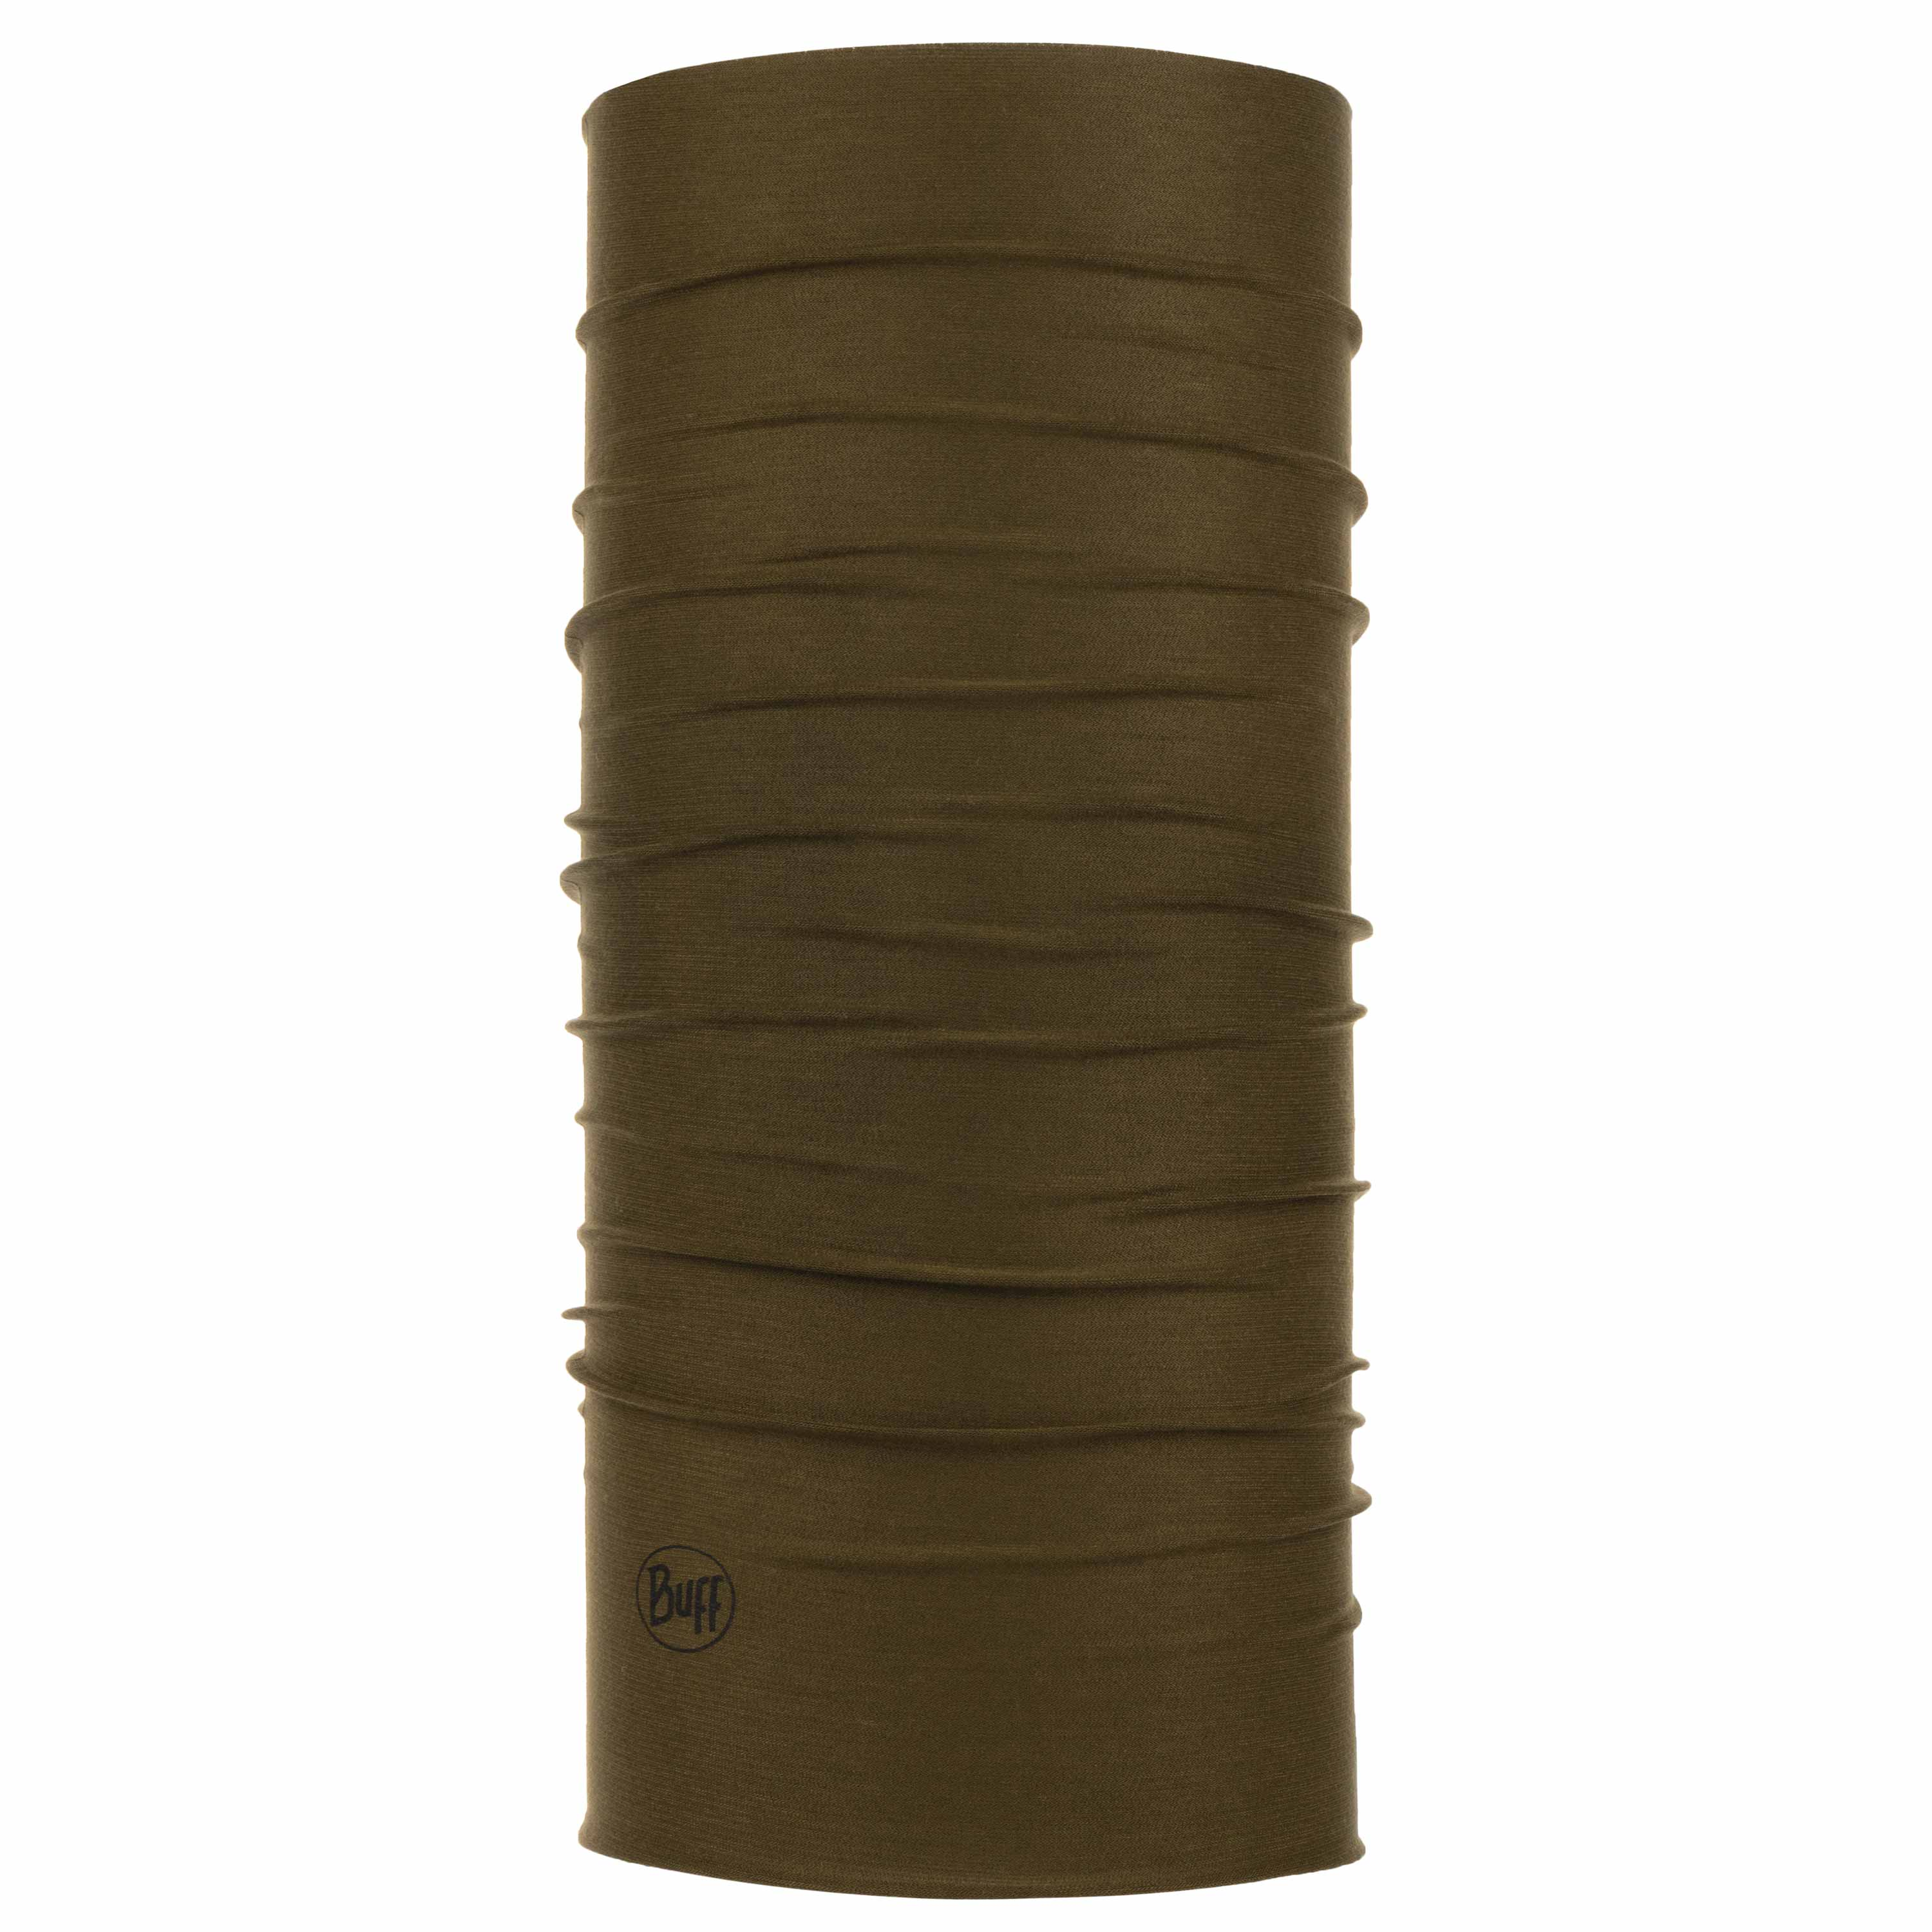 Buff Schlauchtuch Coolnet UV+ Insulated solid brindle